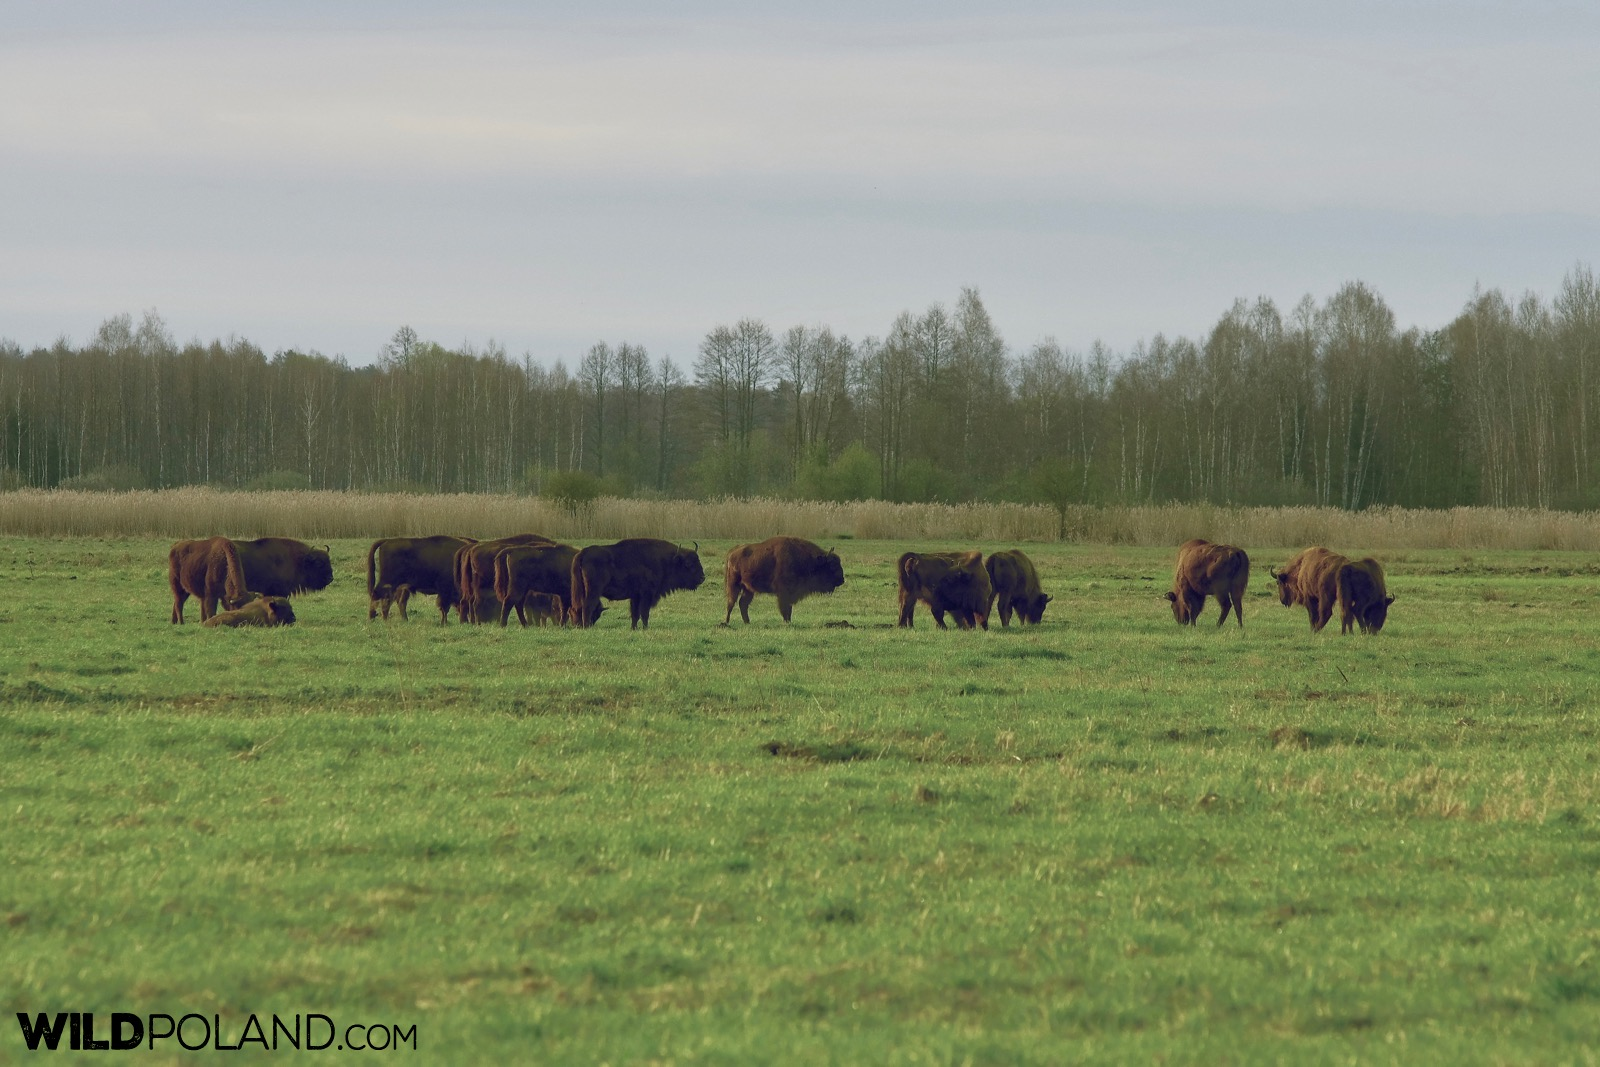 Herd of European Bison at the meadow, Białowieża Forest - photo by Andrzej Petryna